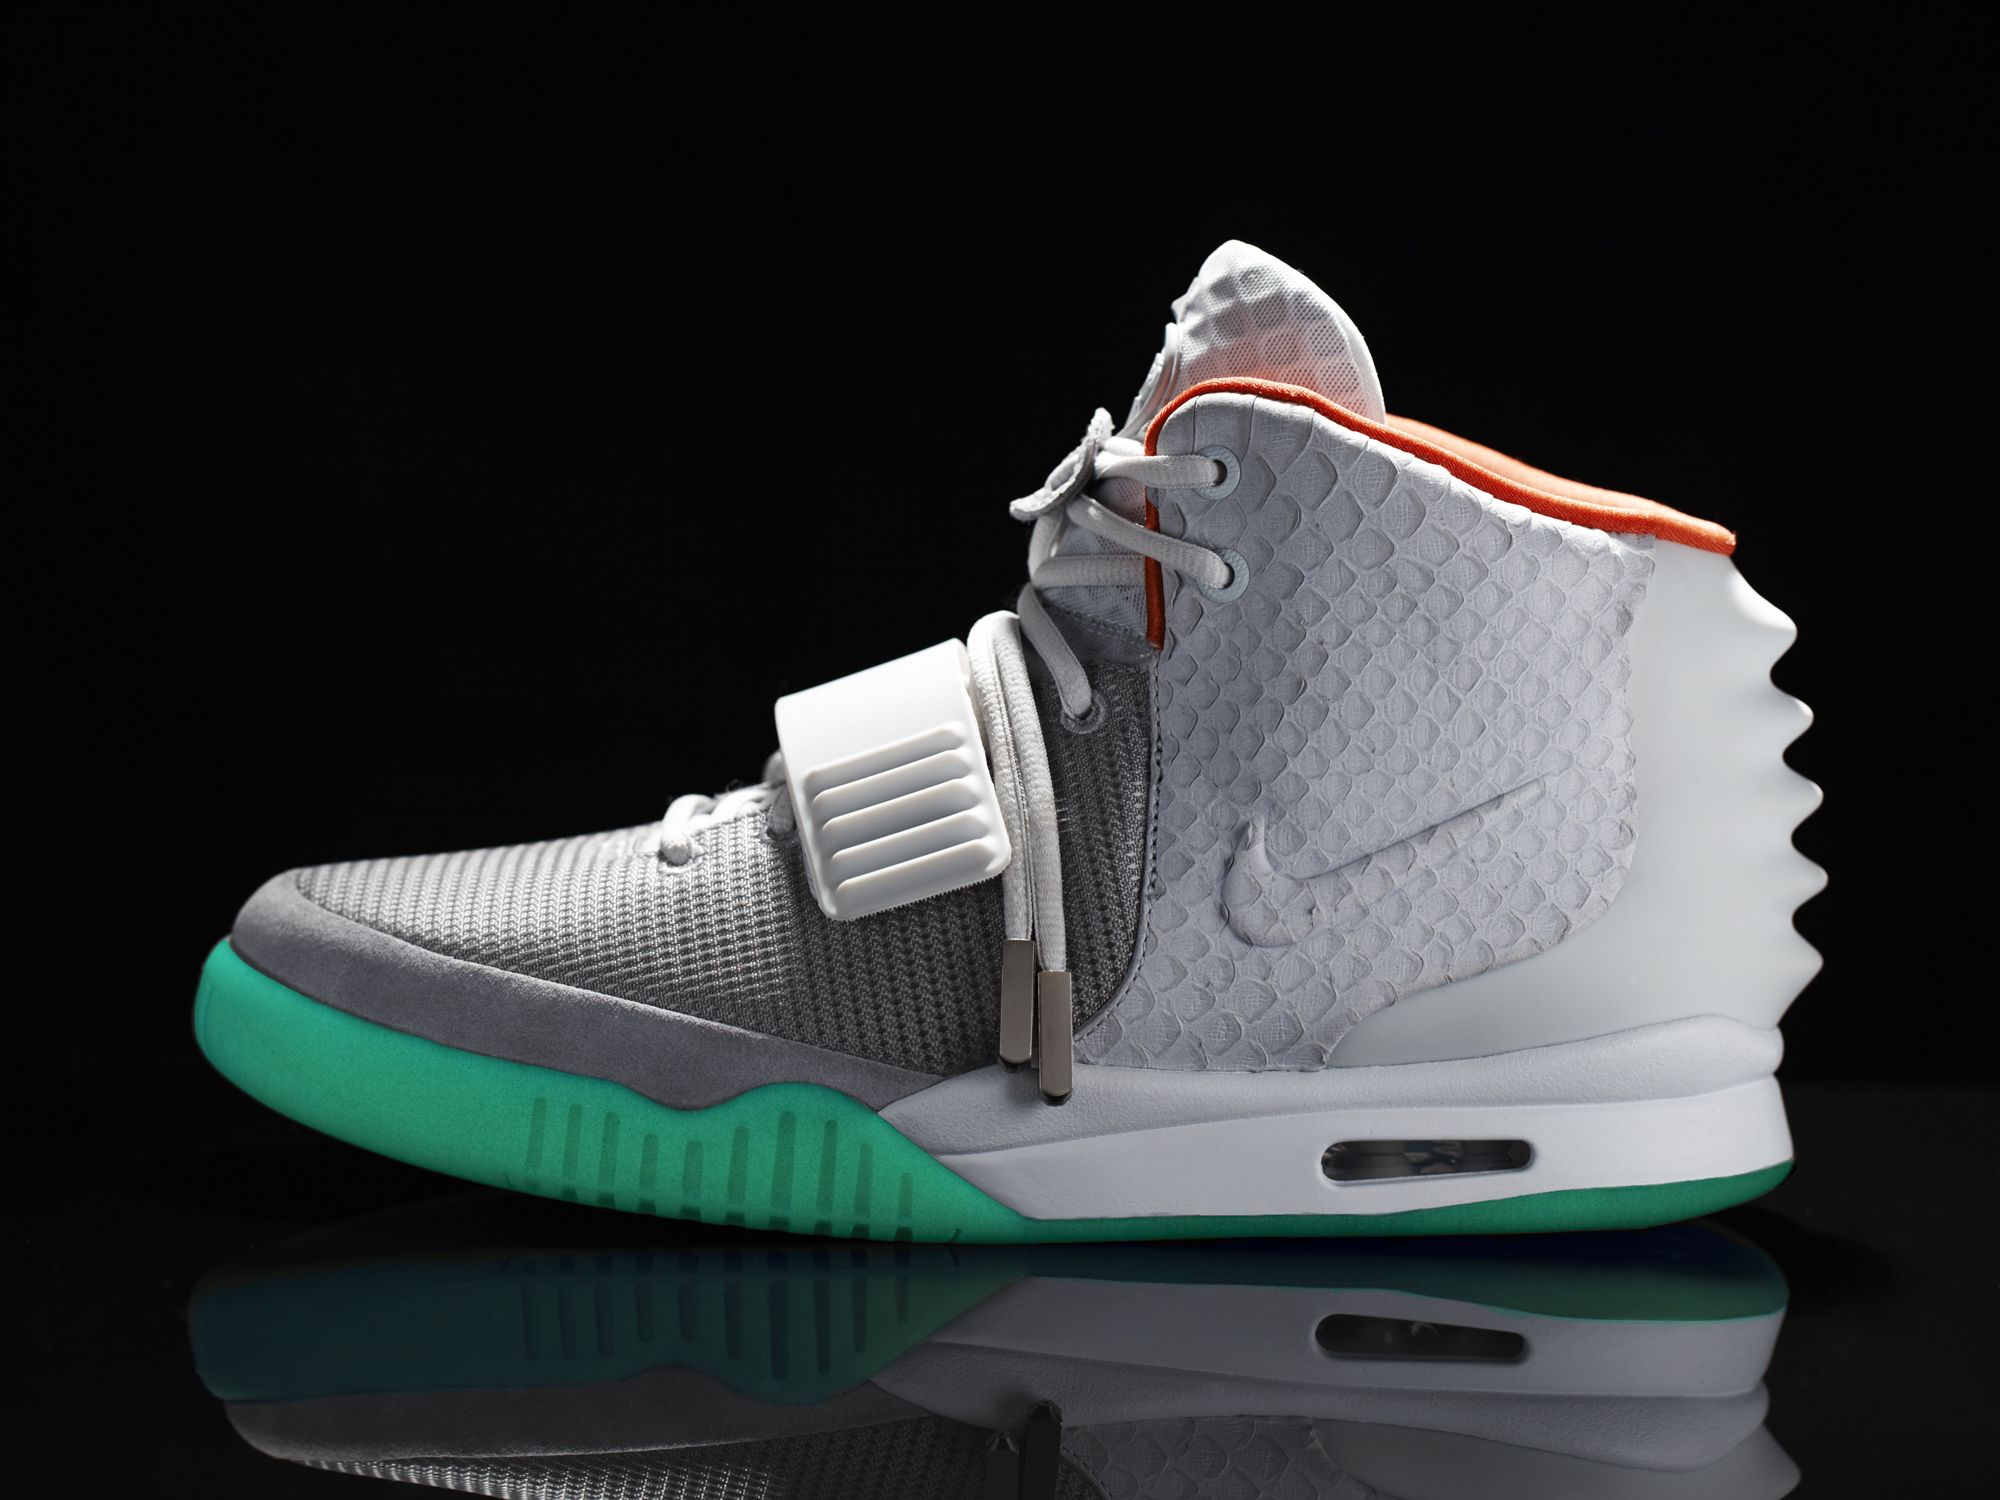 Nike Yeezy II — blog: Dude, You Camped Out to Buy Kanye West's Sneakers